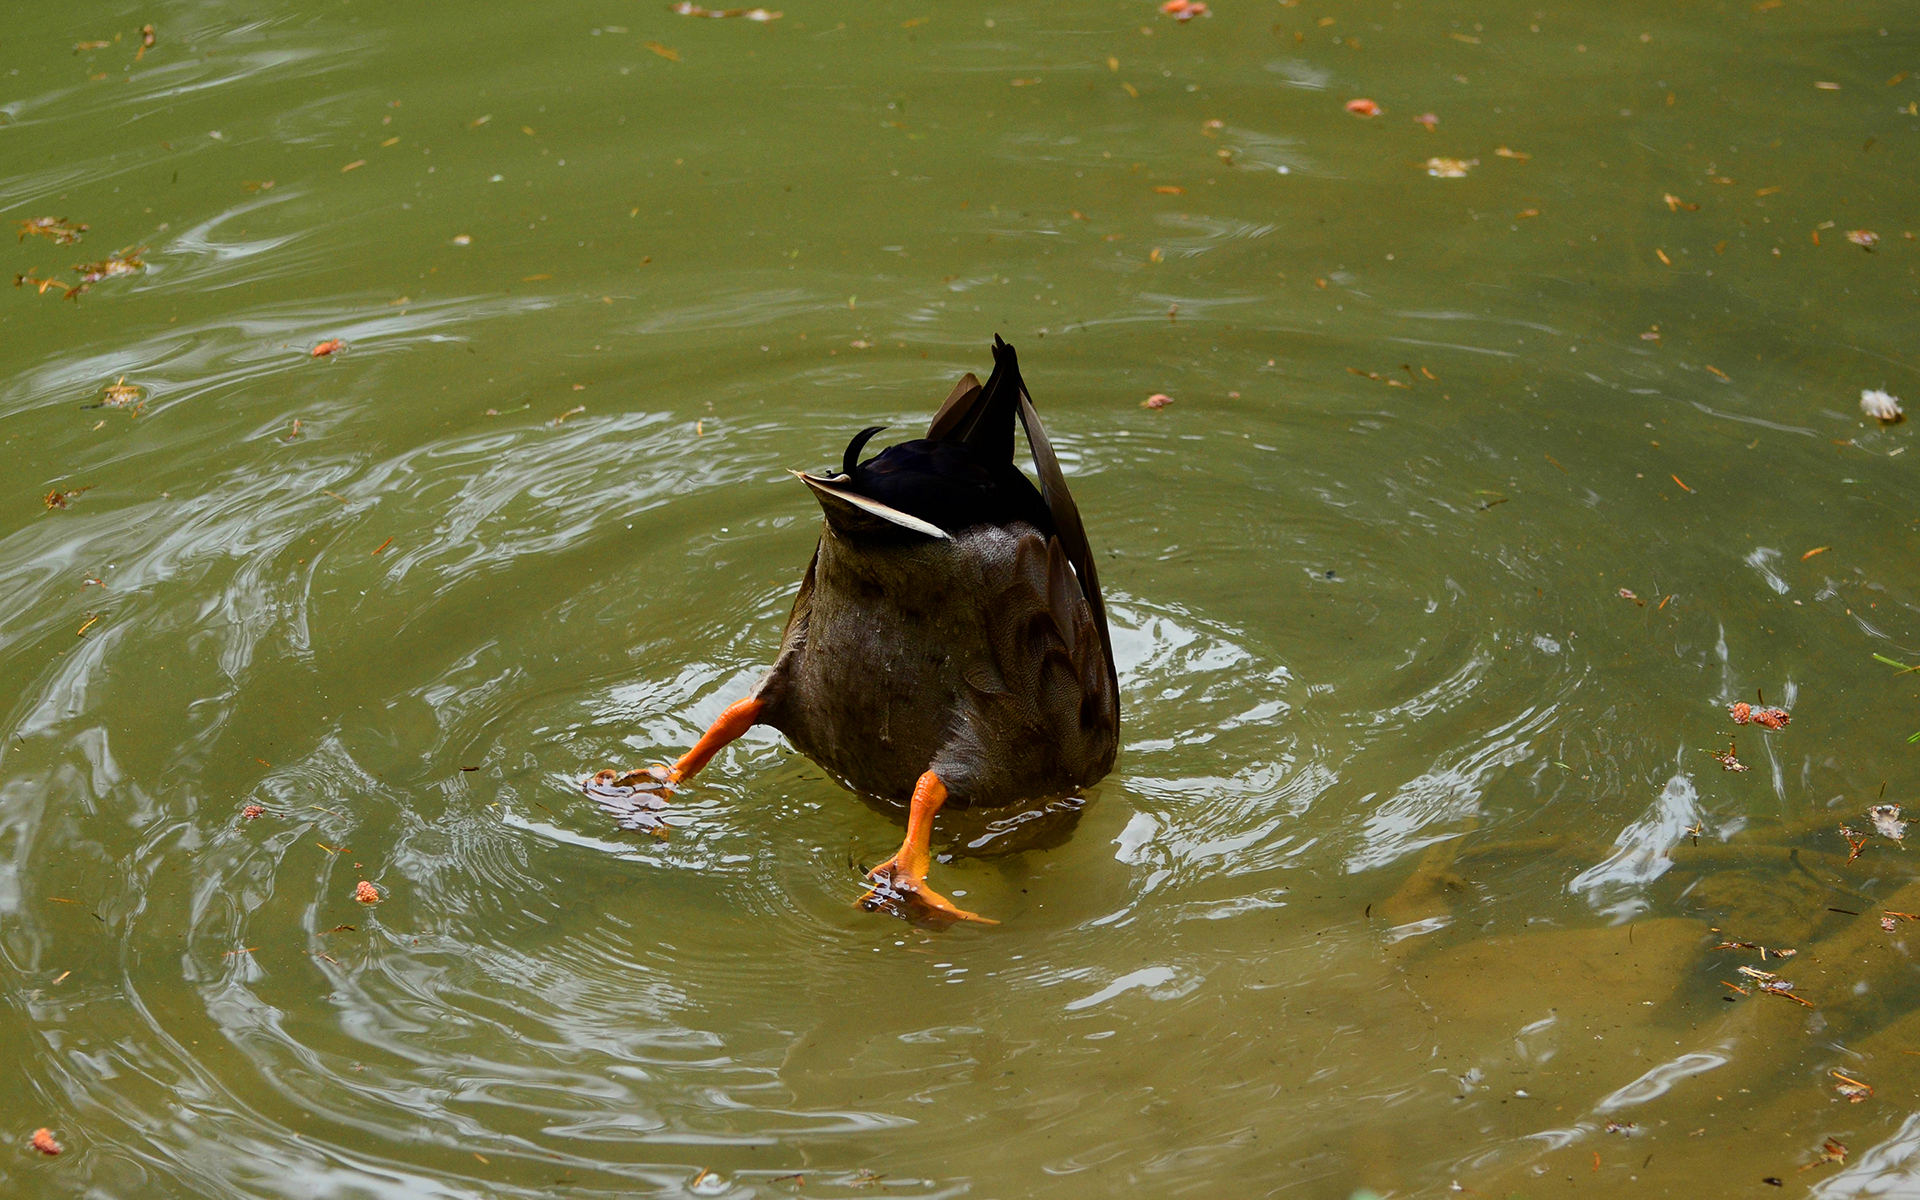 Funny duck tail